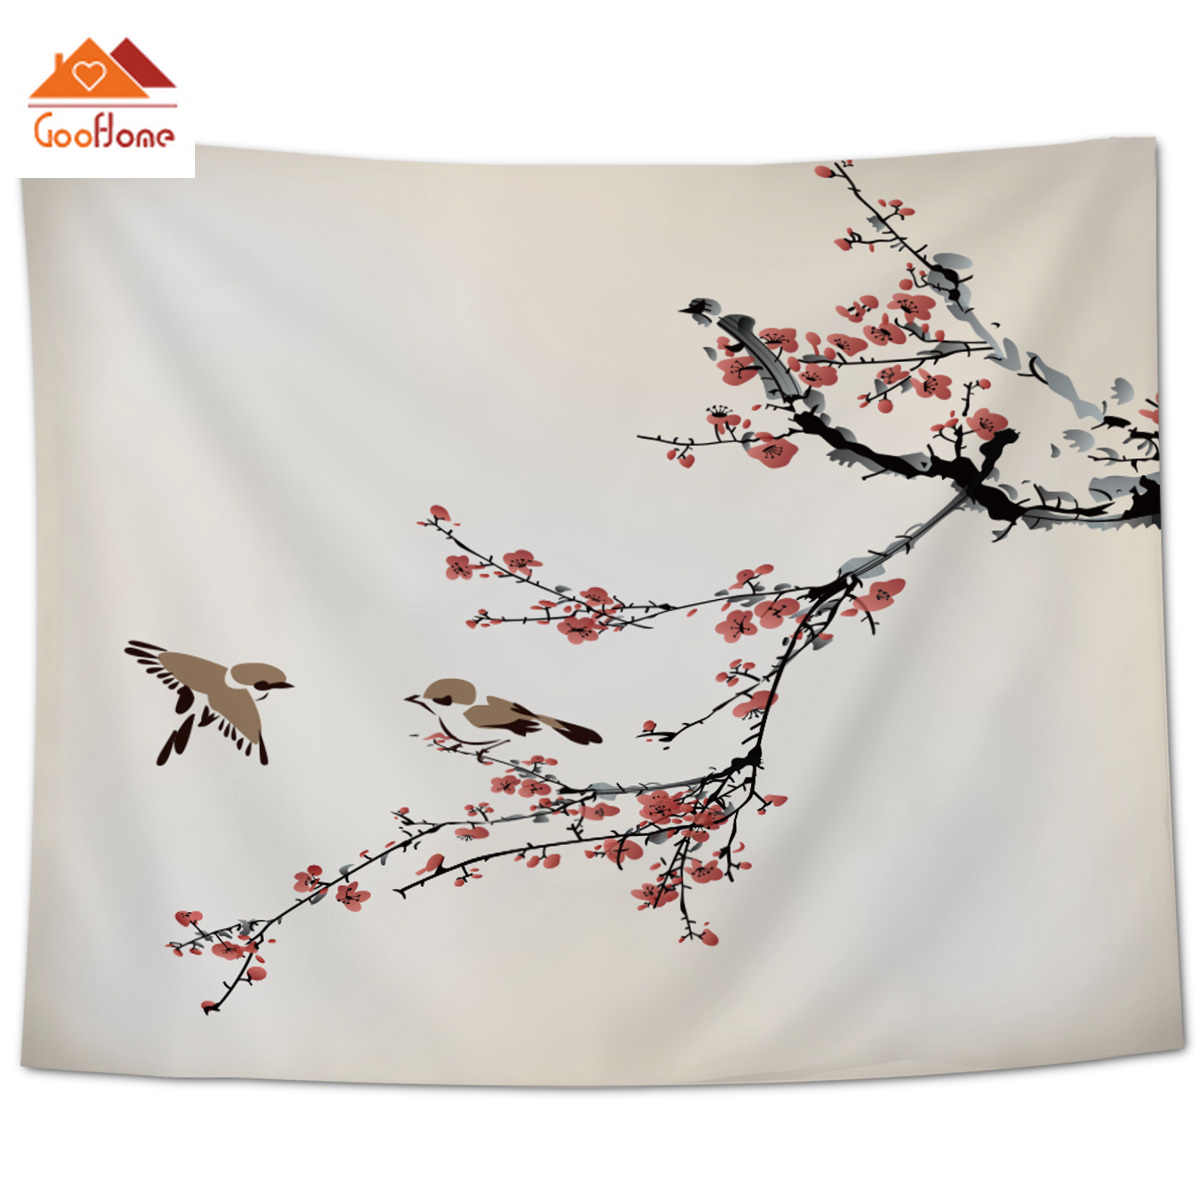 Goohome Plum Blossom Japanese Wall Decor Wall Decor Tapestries Bedspread Coverlet Wall Art Curtain Throw Towel Hypoallergenic